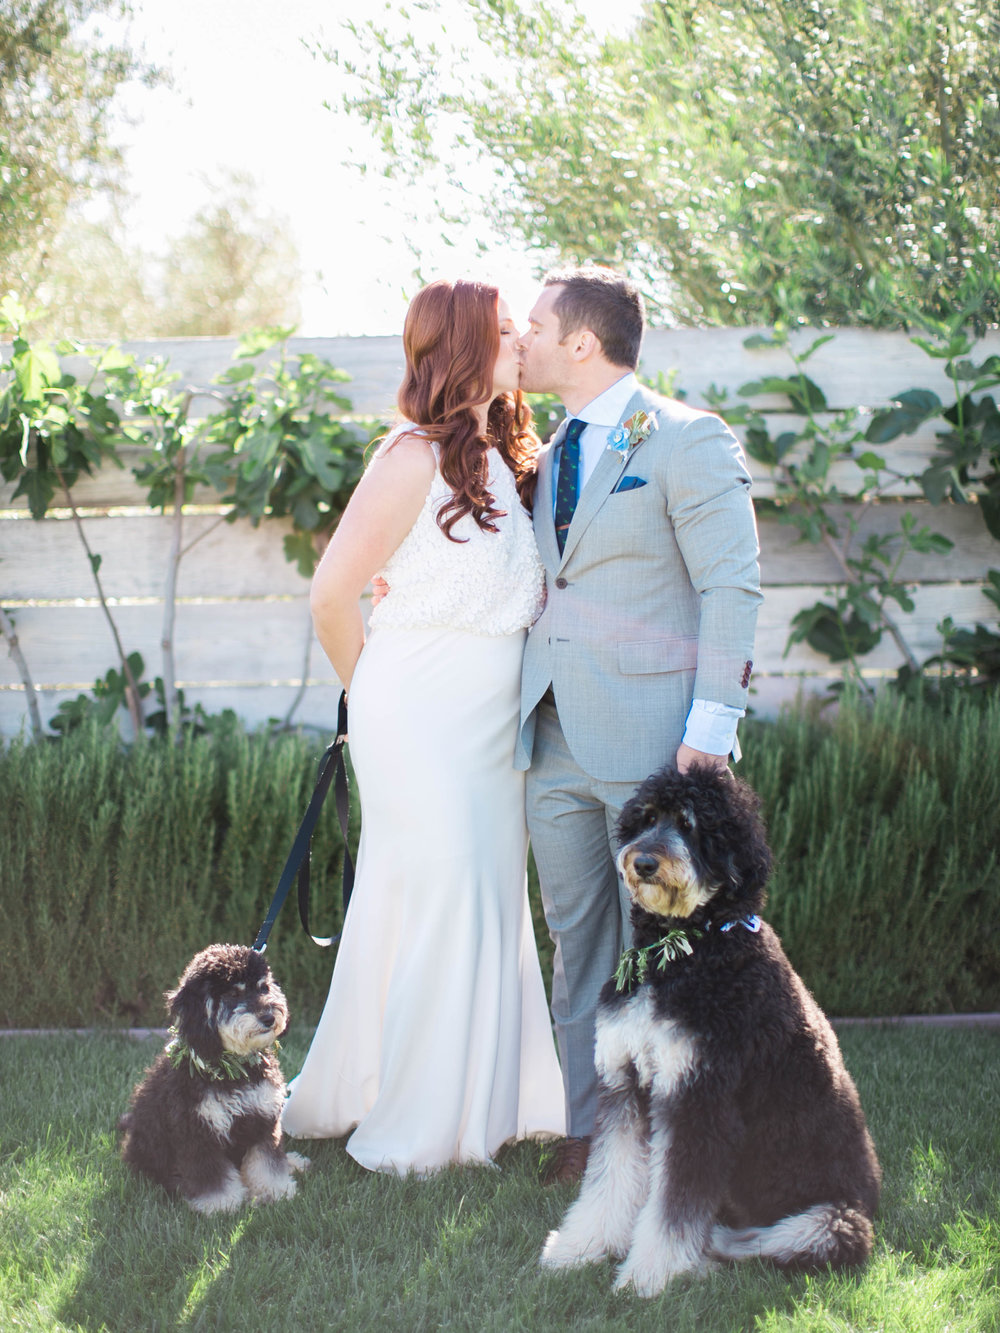 Couple sharing a kiss at their wedding with two dogs